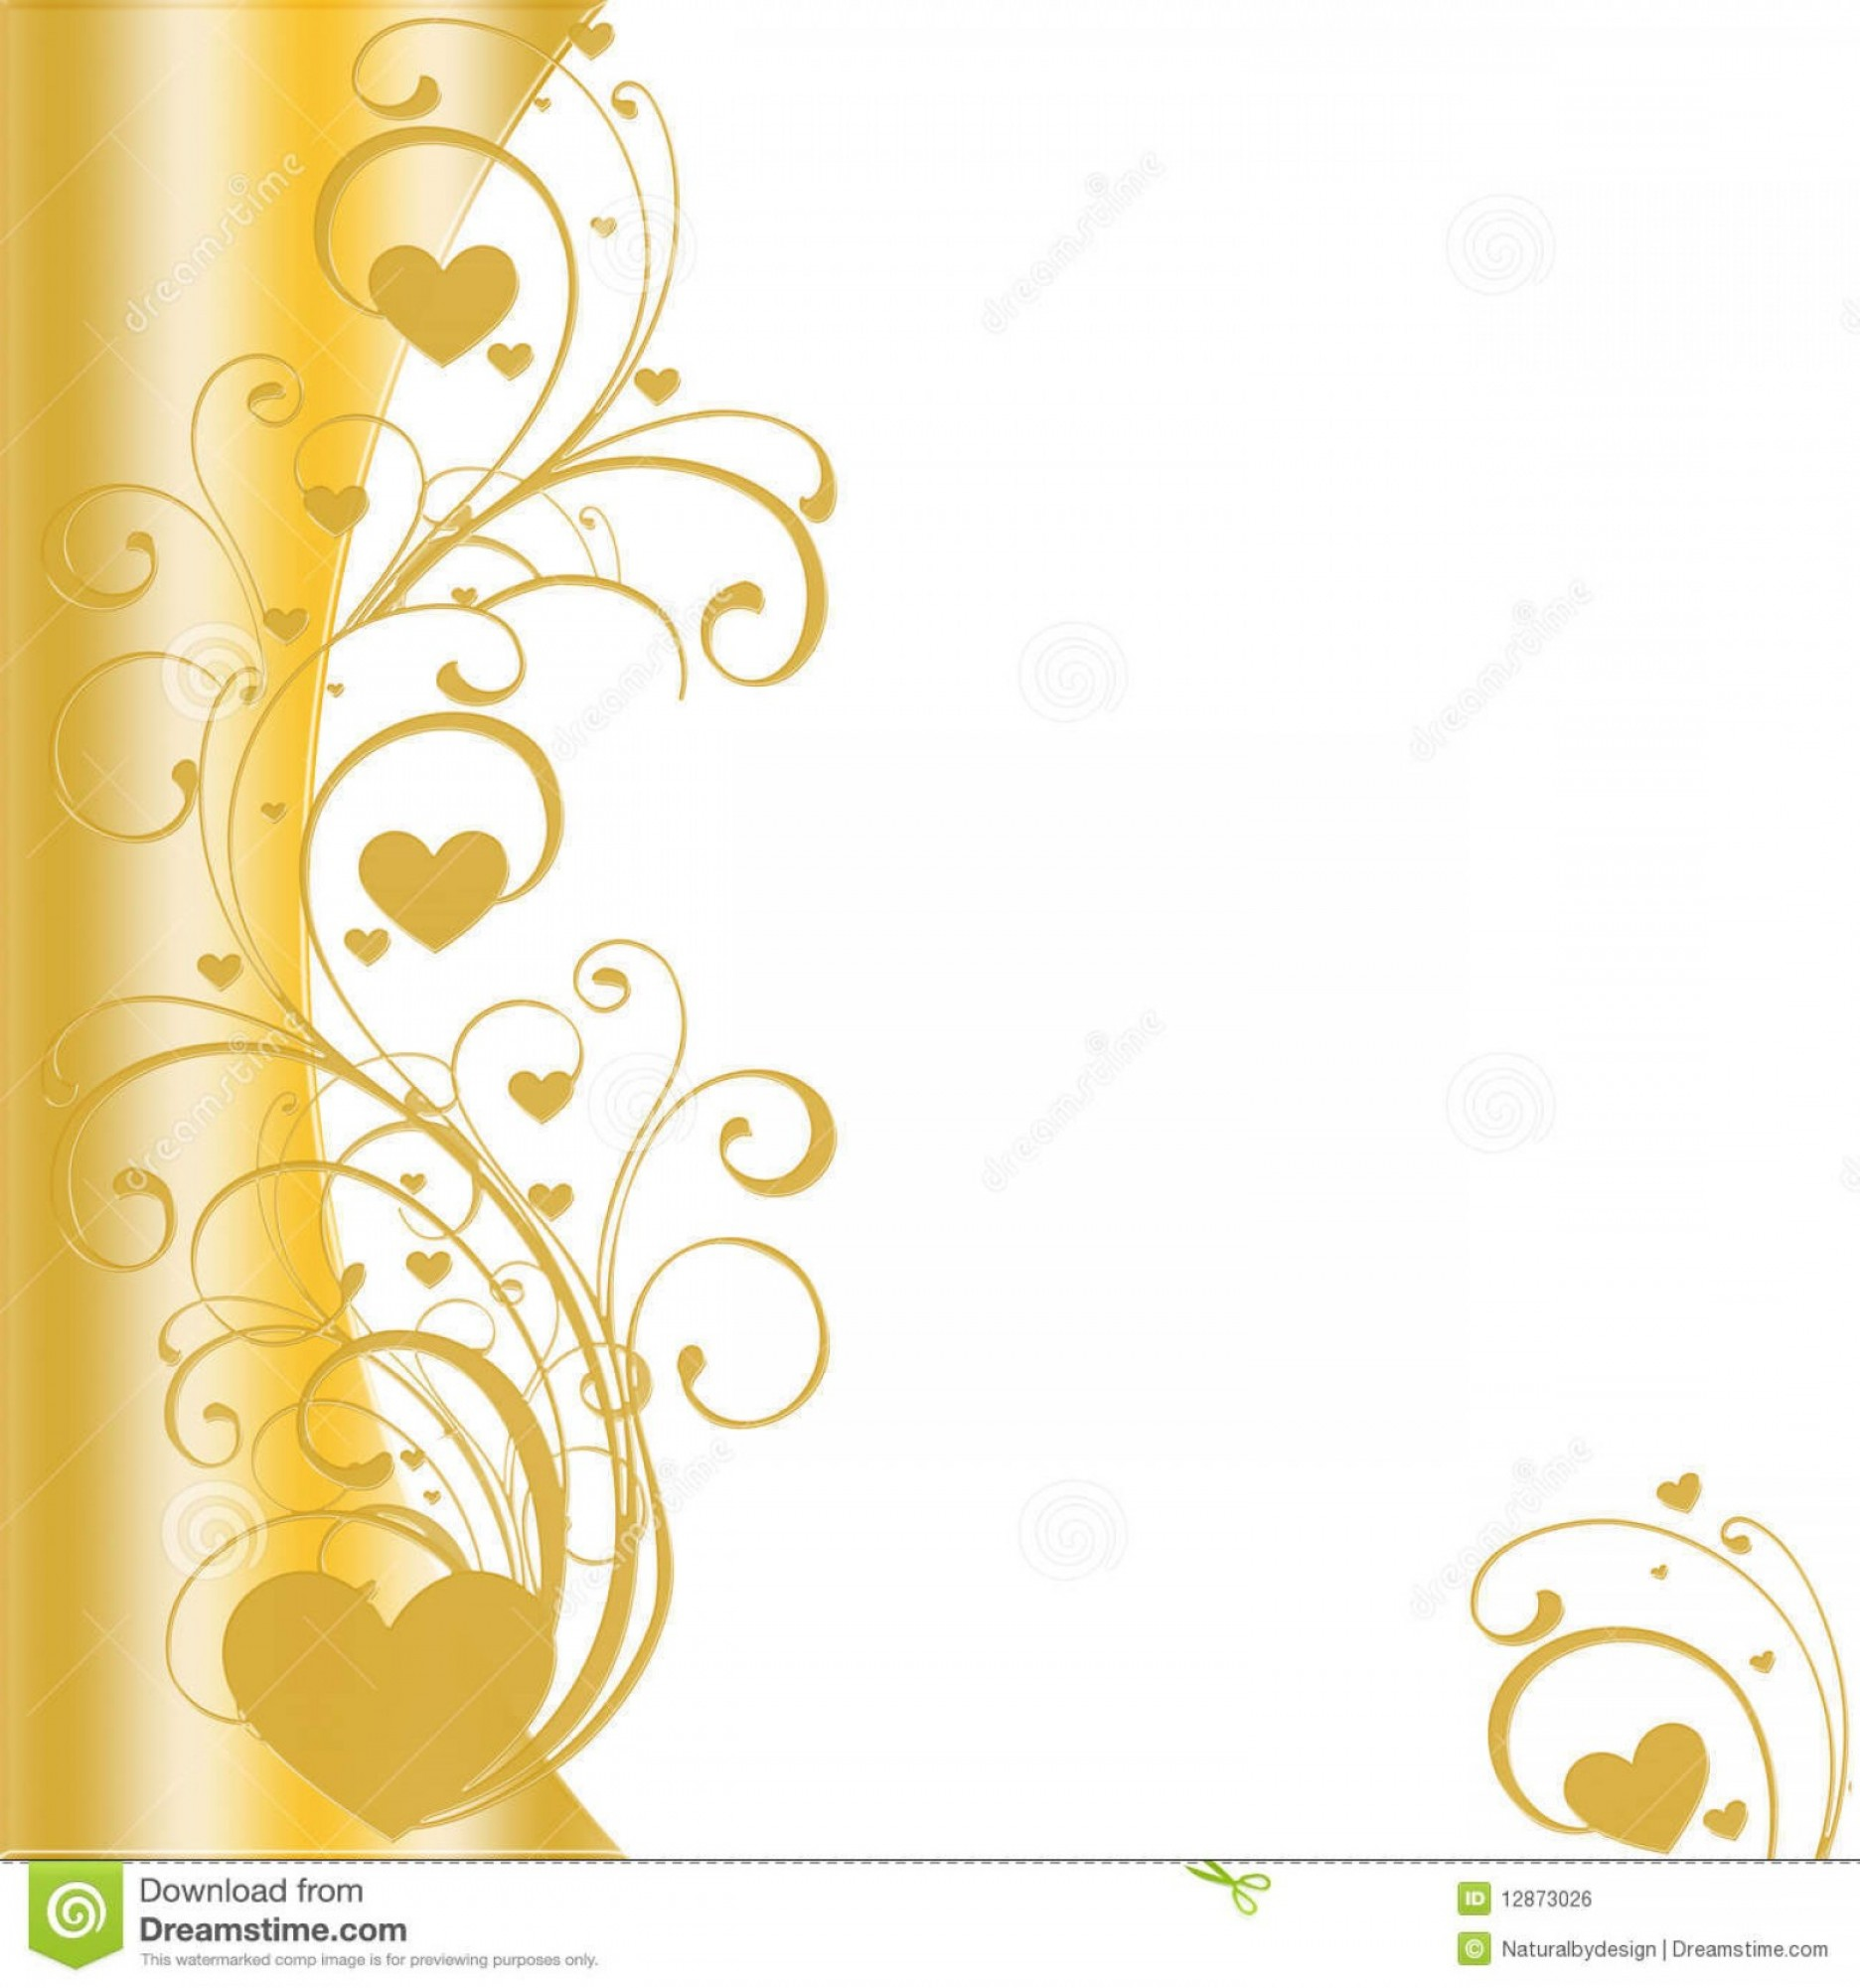 Gold Wedding Swirl Vector: Royalty Free Stock Image Golden Heart Border Vector Image